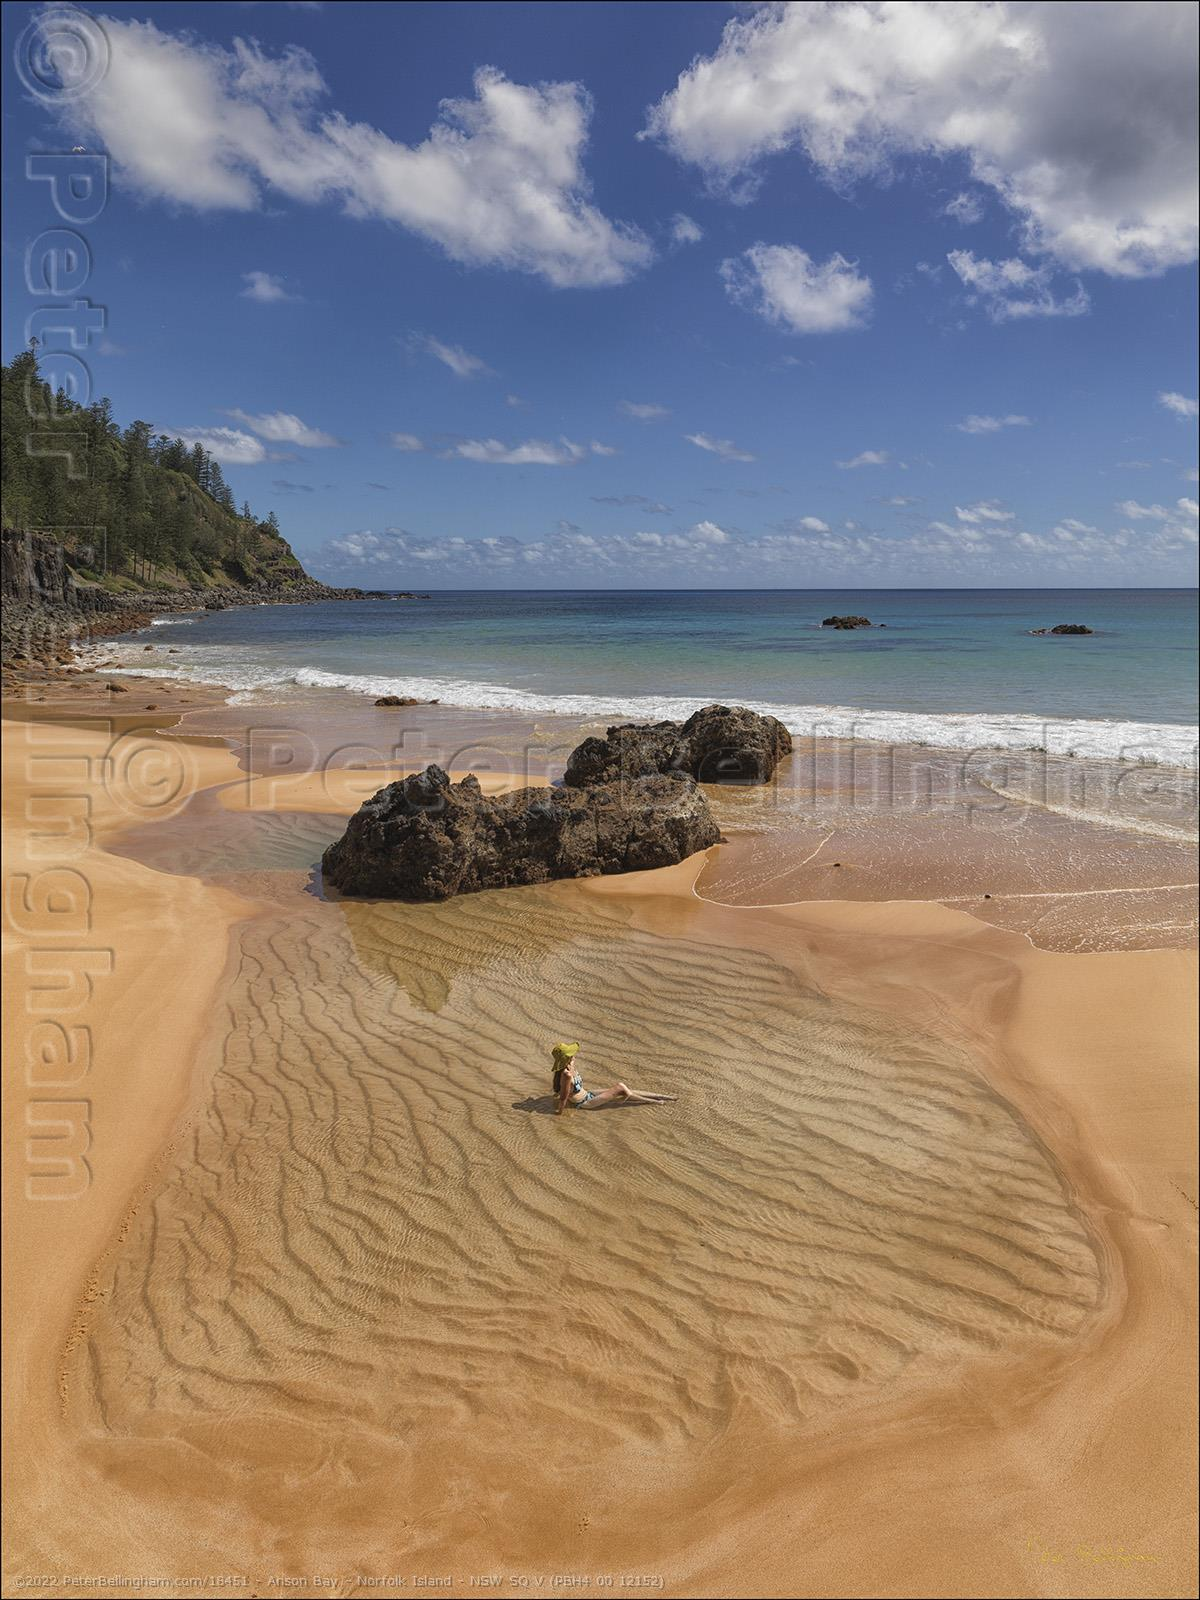 Peter Bellingham Photography Anson Bay - Norfolk Island - NSW SQ V (PBH4 00 12152)